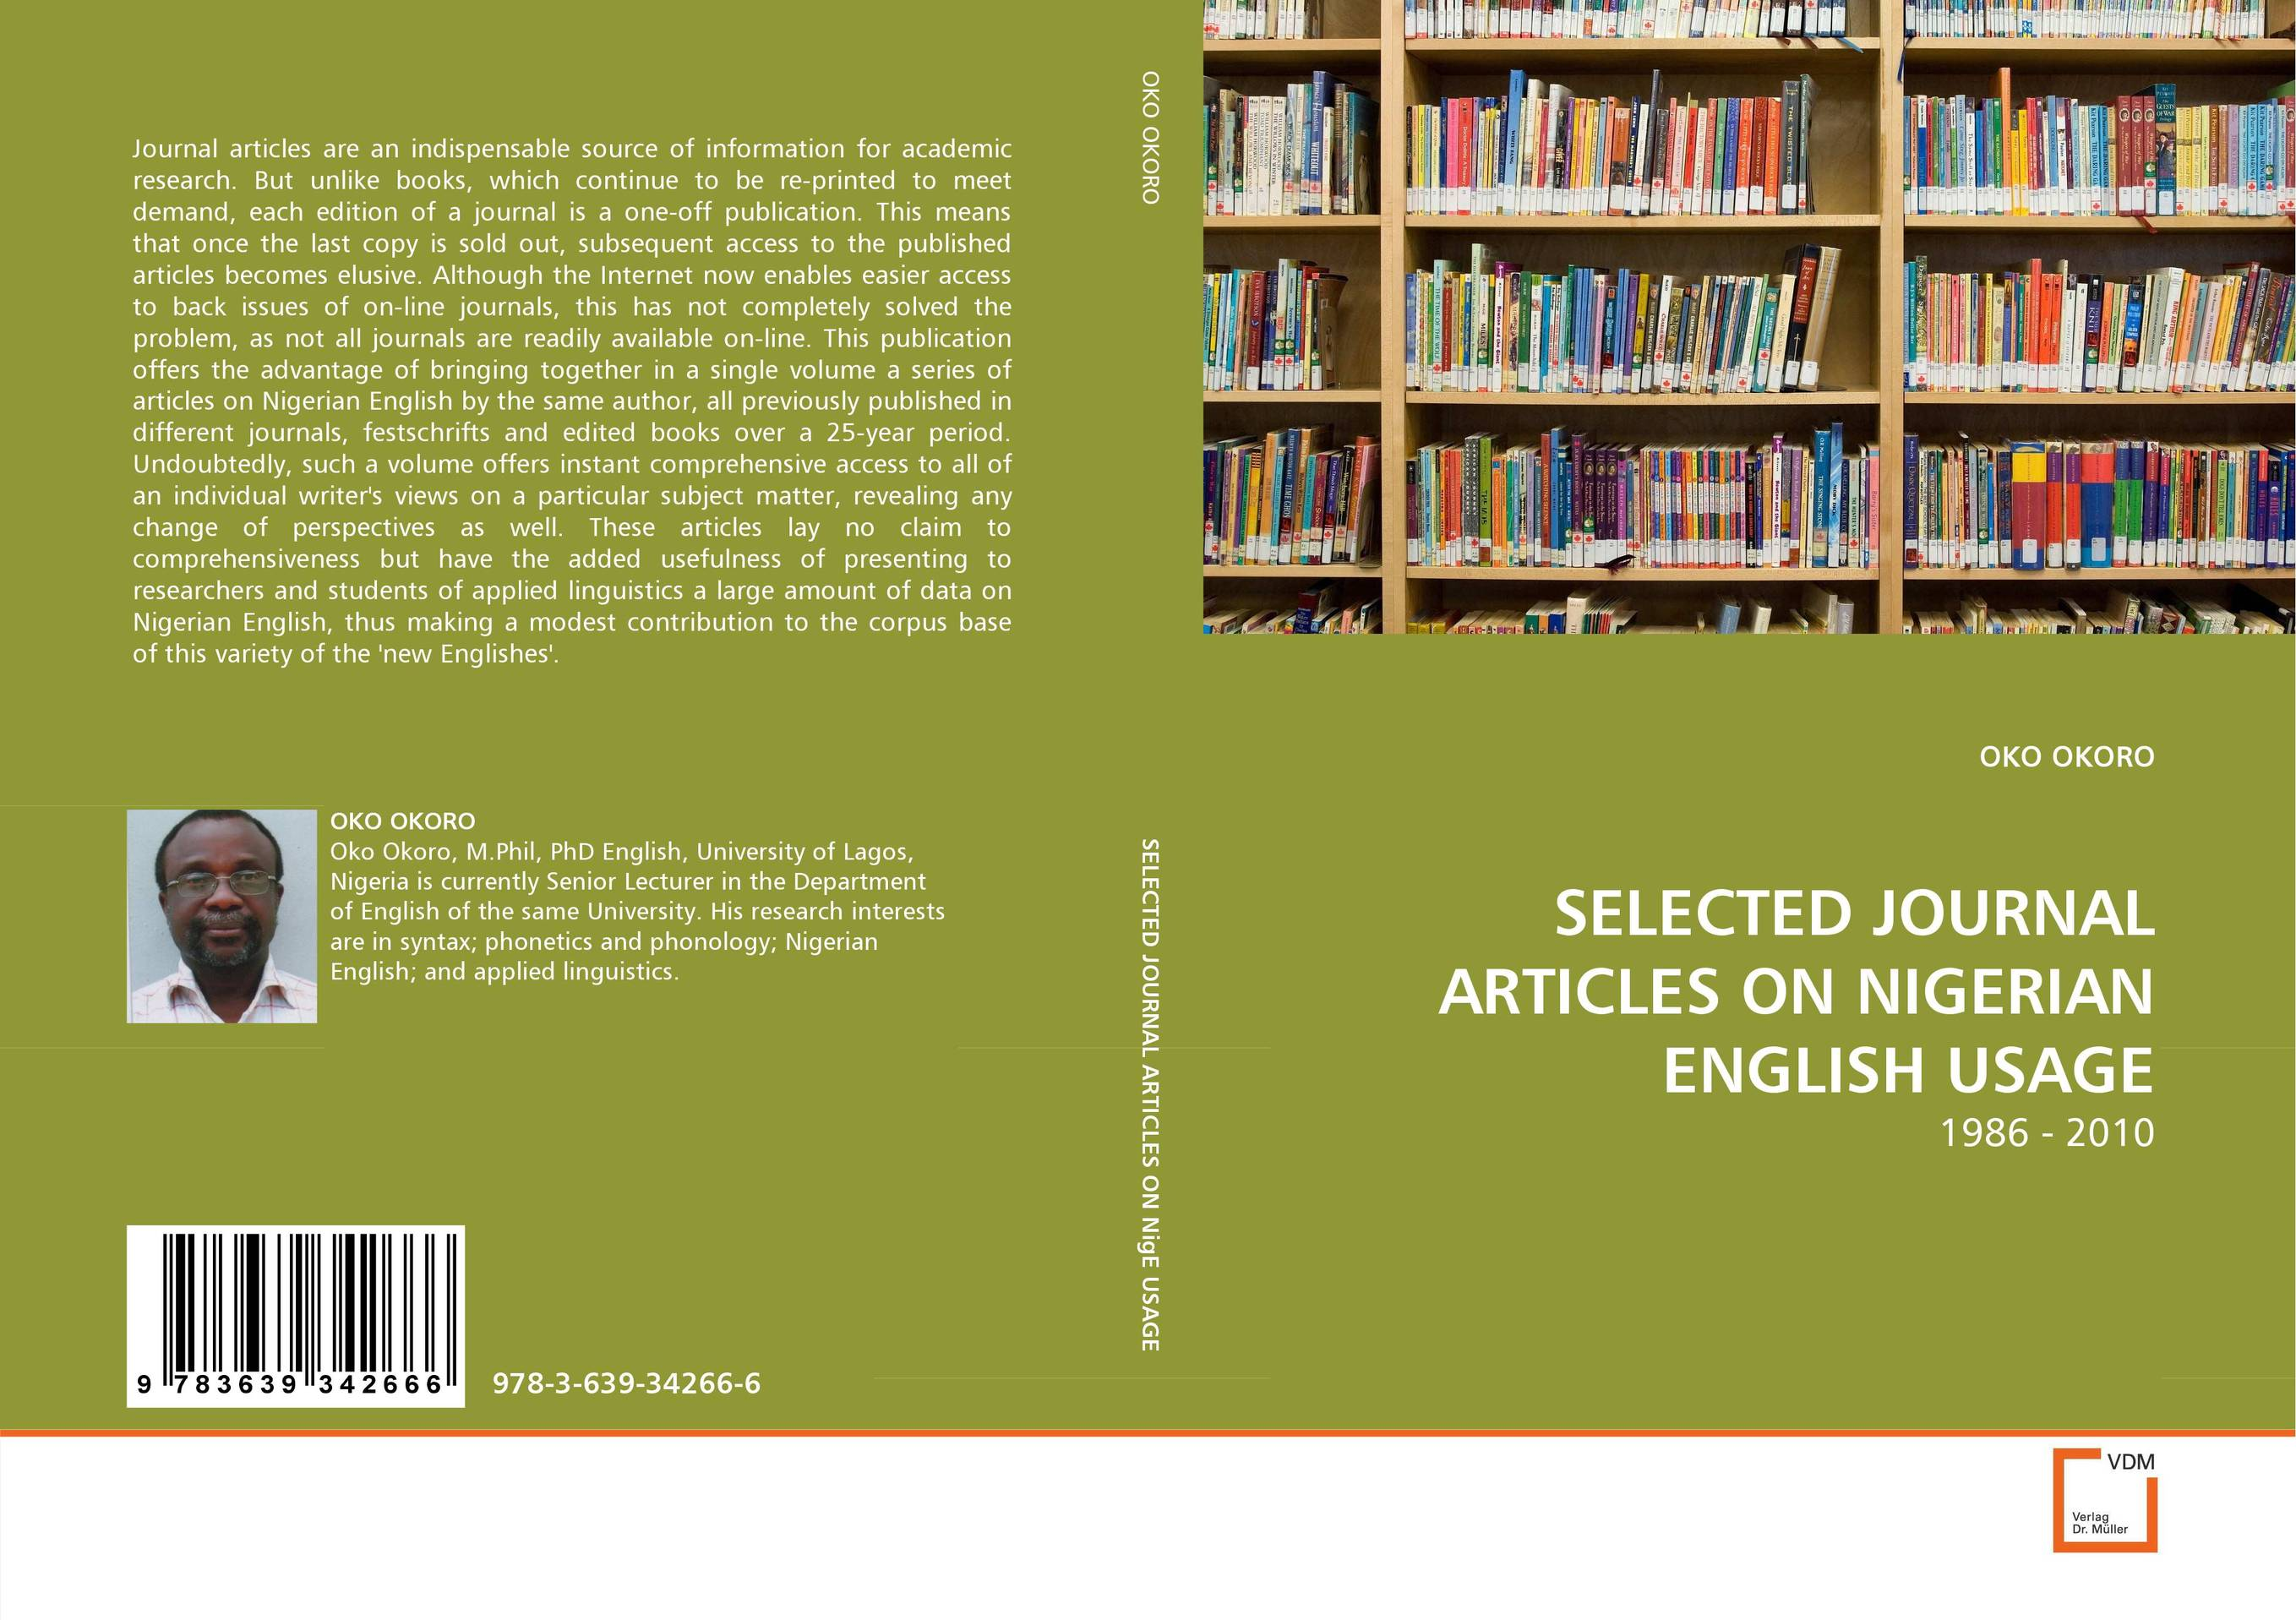 SELECTED JOURNAL ARTICLES ON NIGERIAN ENGLISH USAGE